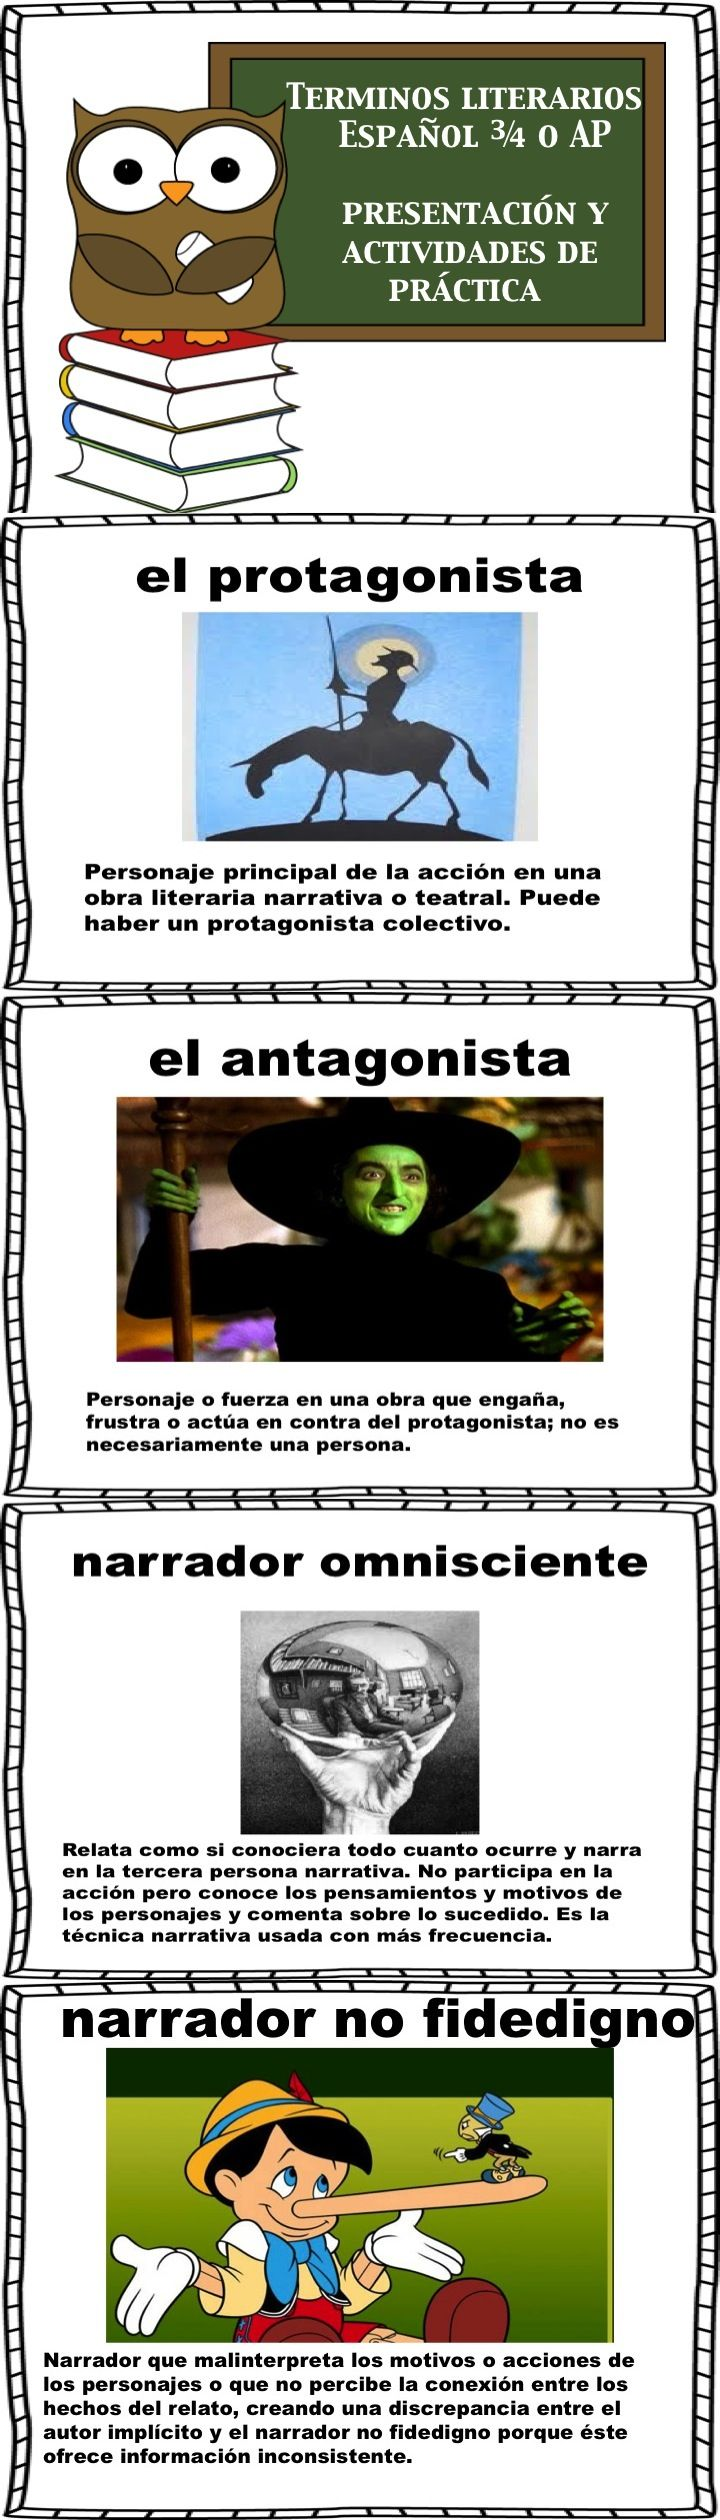 Terminos Literarios-presentation, note taking, and activity. Great for teaching students how to analyze literature in Spanish.